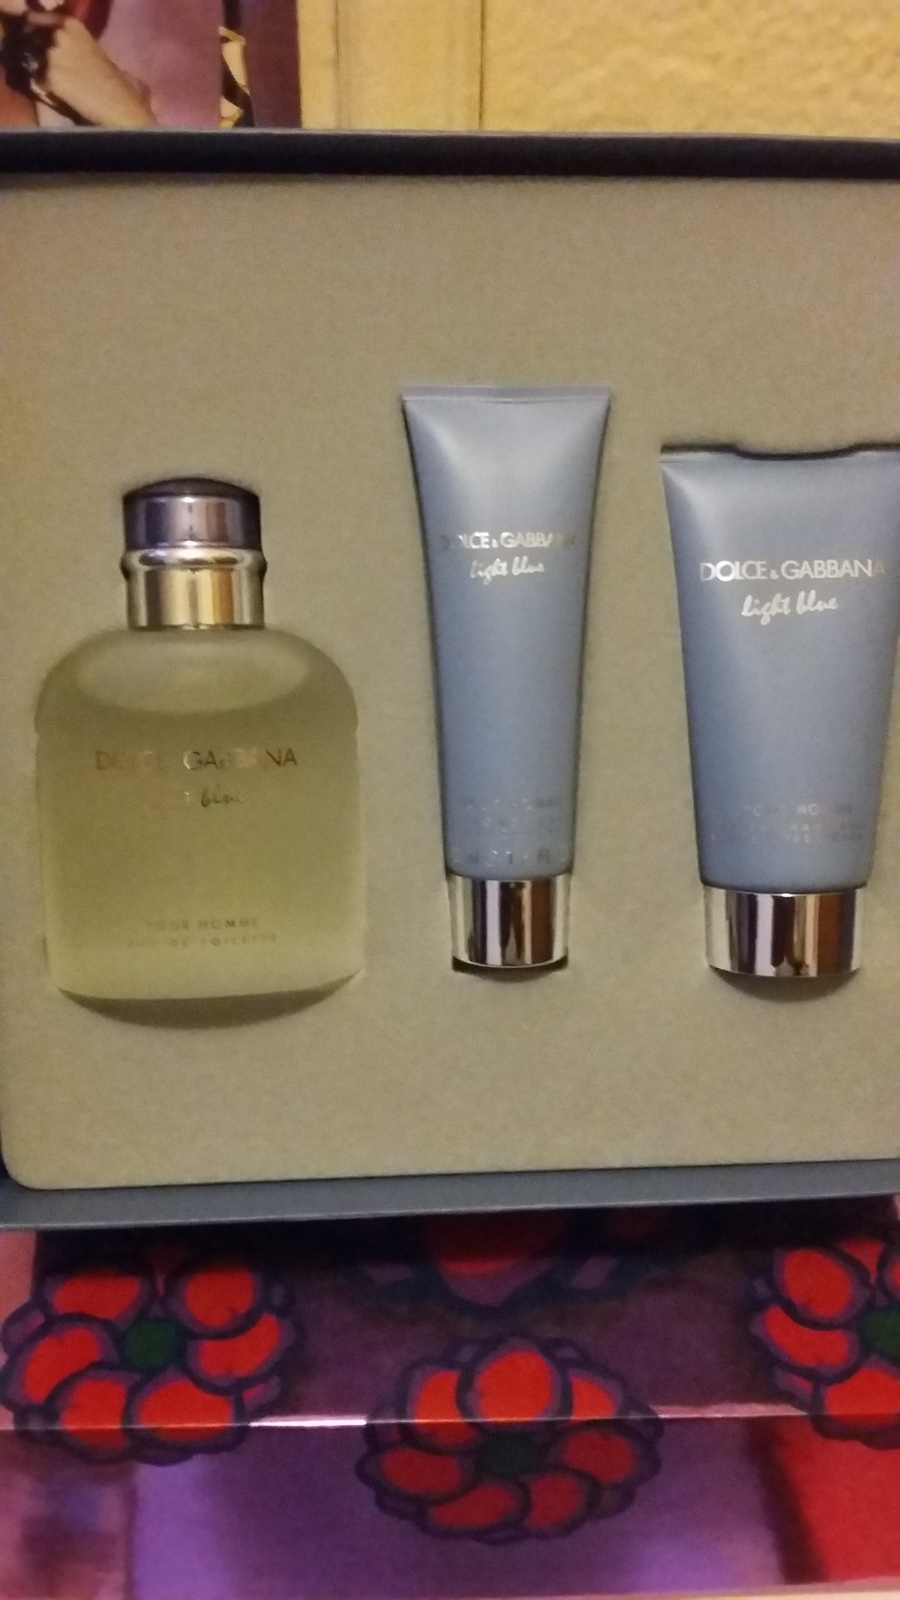 Dolce & Gabbana Light Blue Pour Homme Cologne 3 Pcs Gift Set